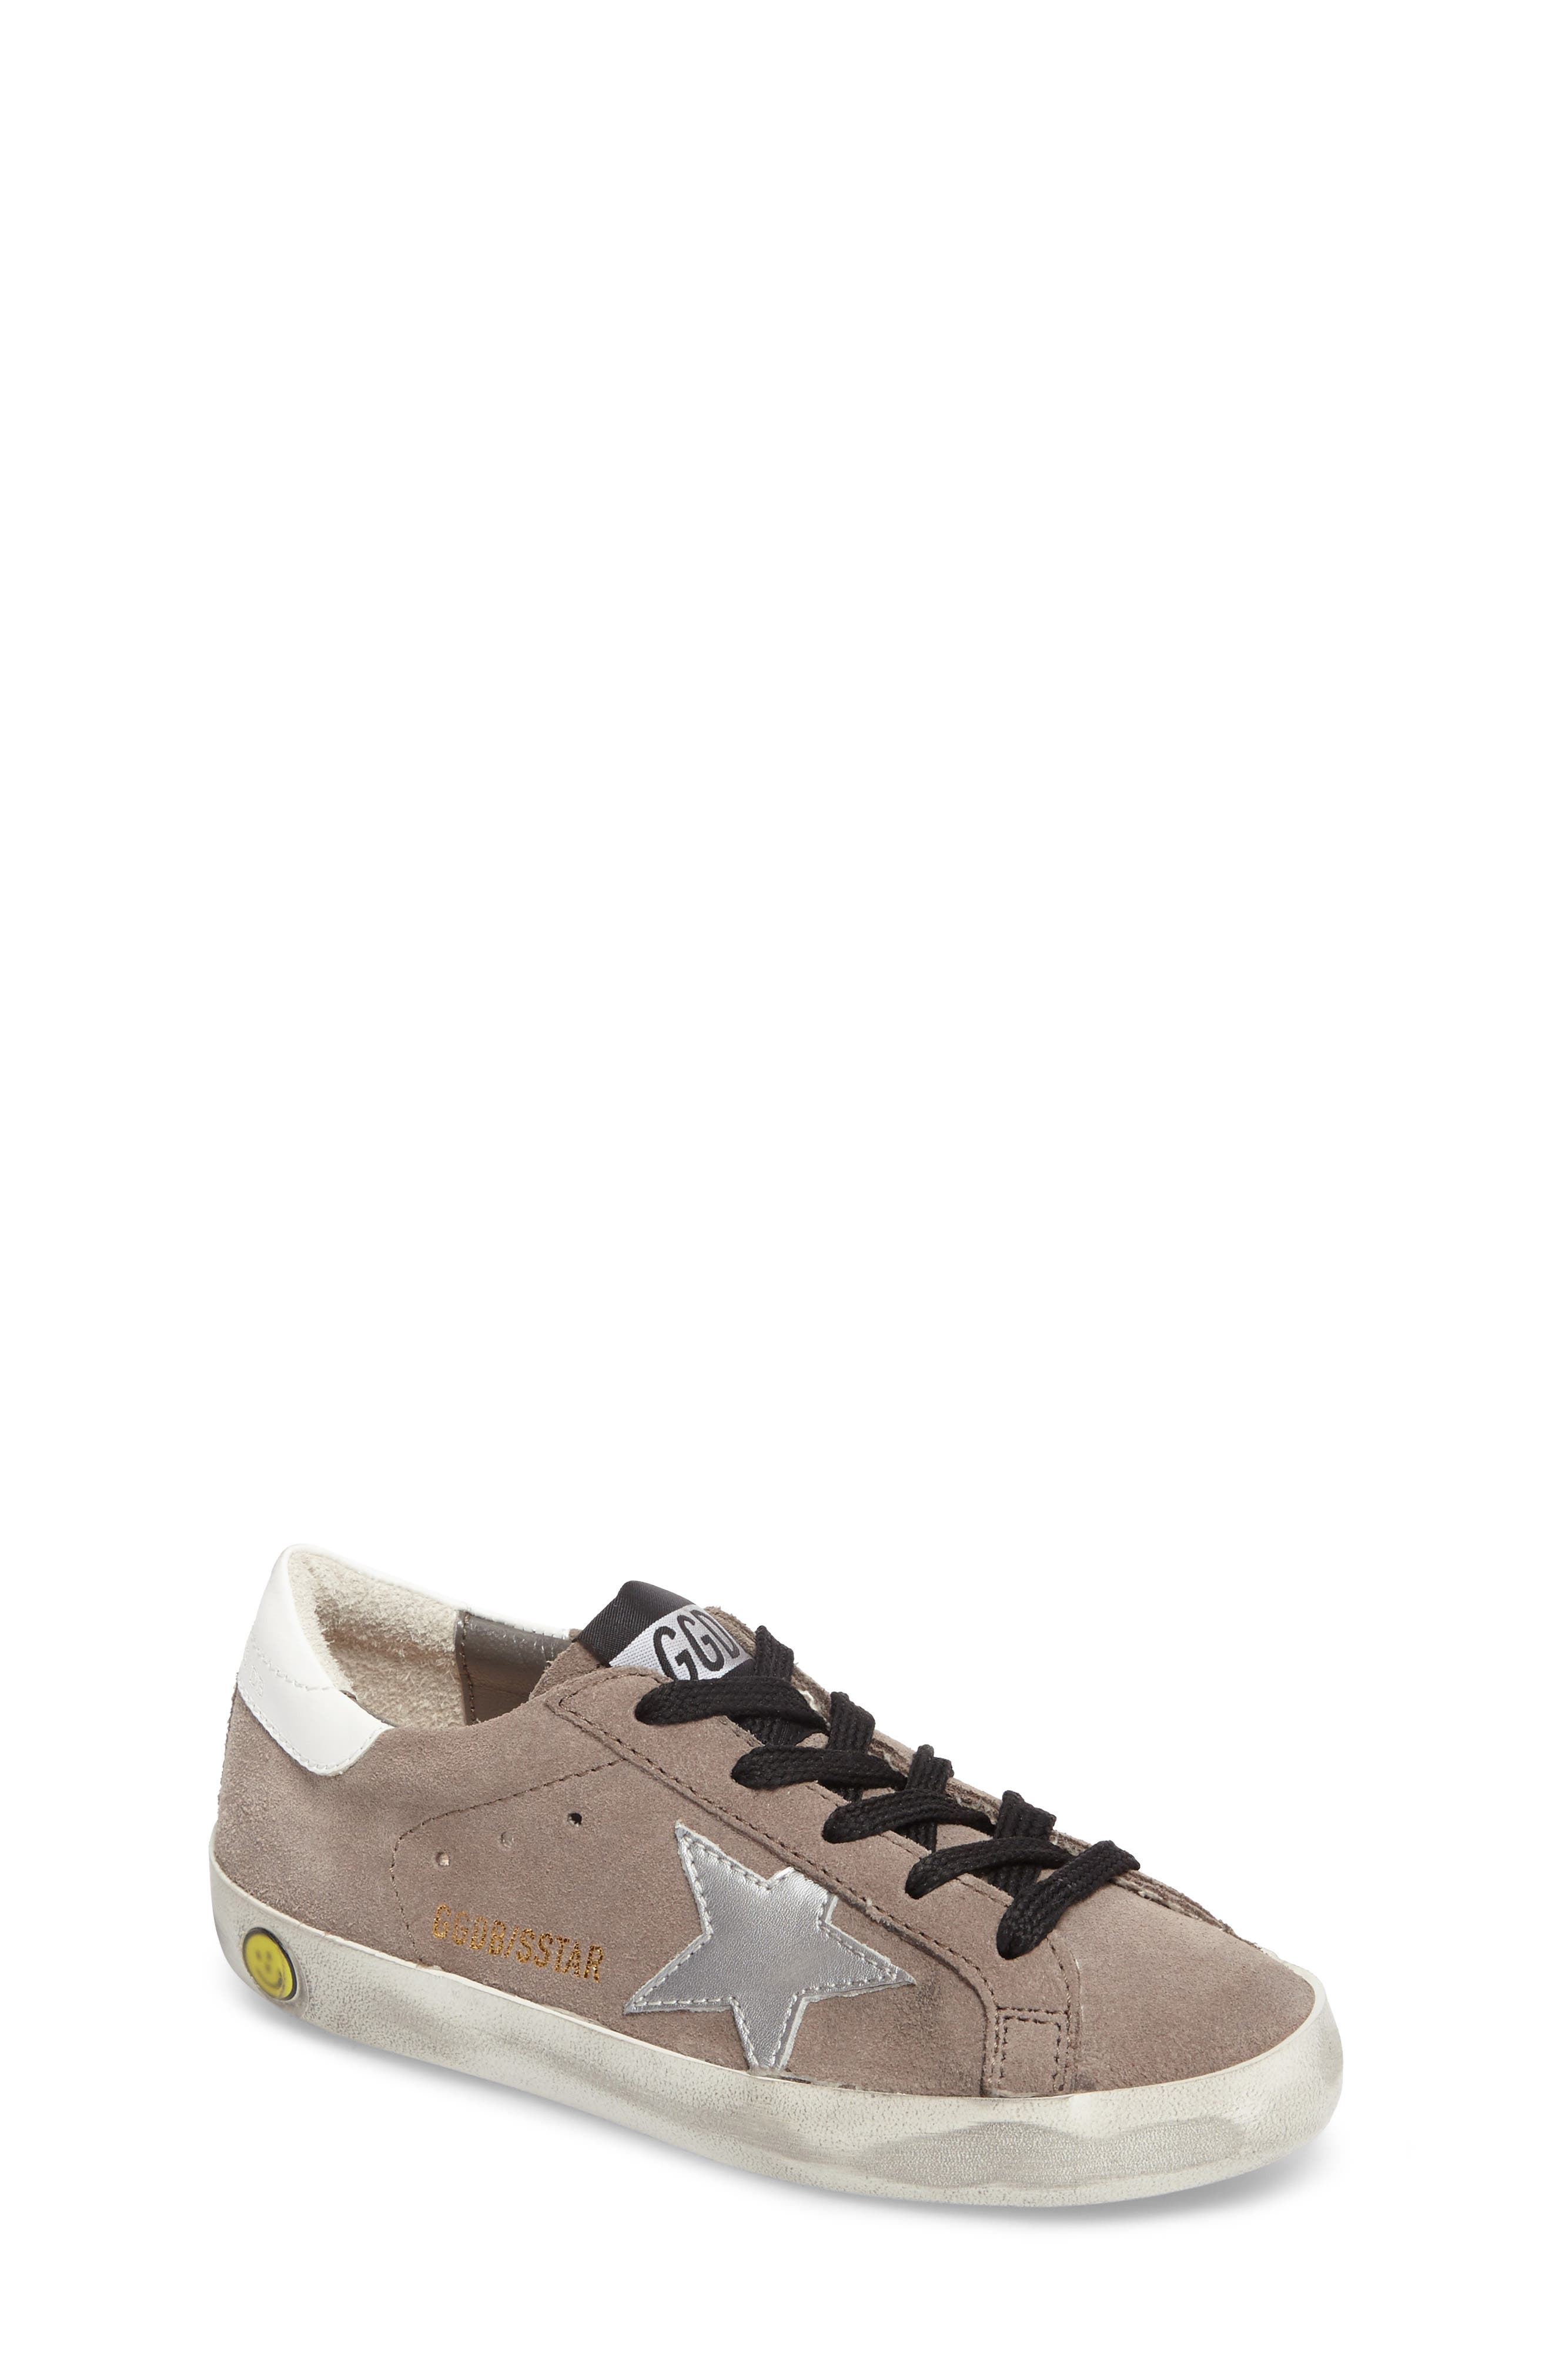 Superstar Low Top Sneaker,                             Main thumbnail 1, color,                             Mid Grey Suede